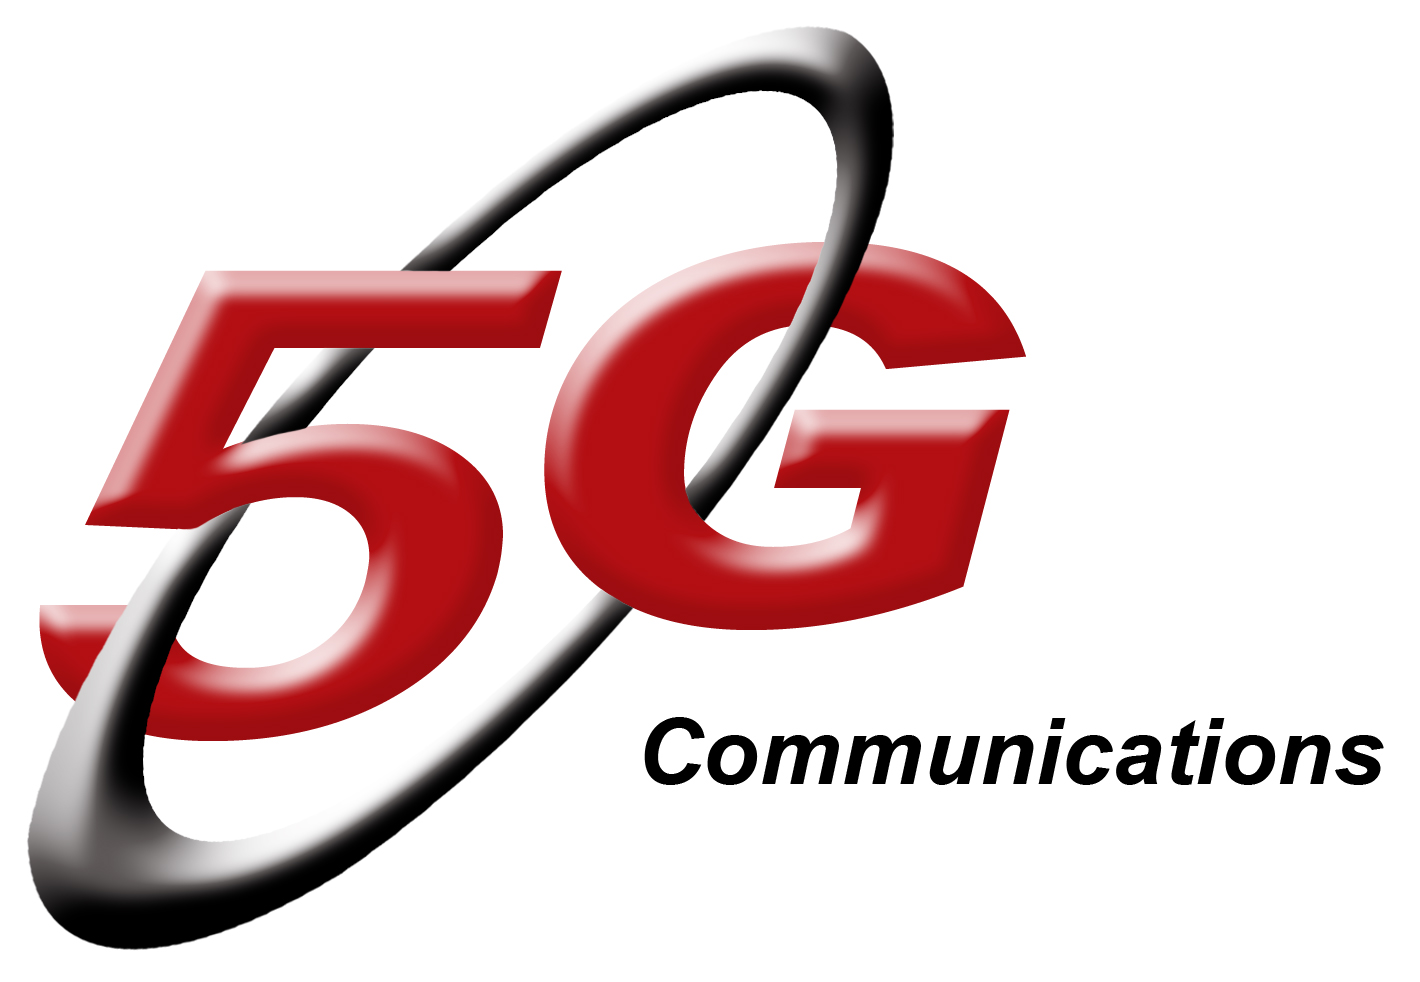 5g-communications